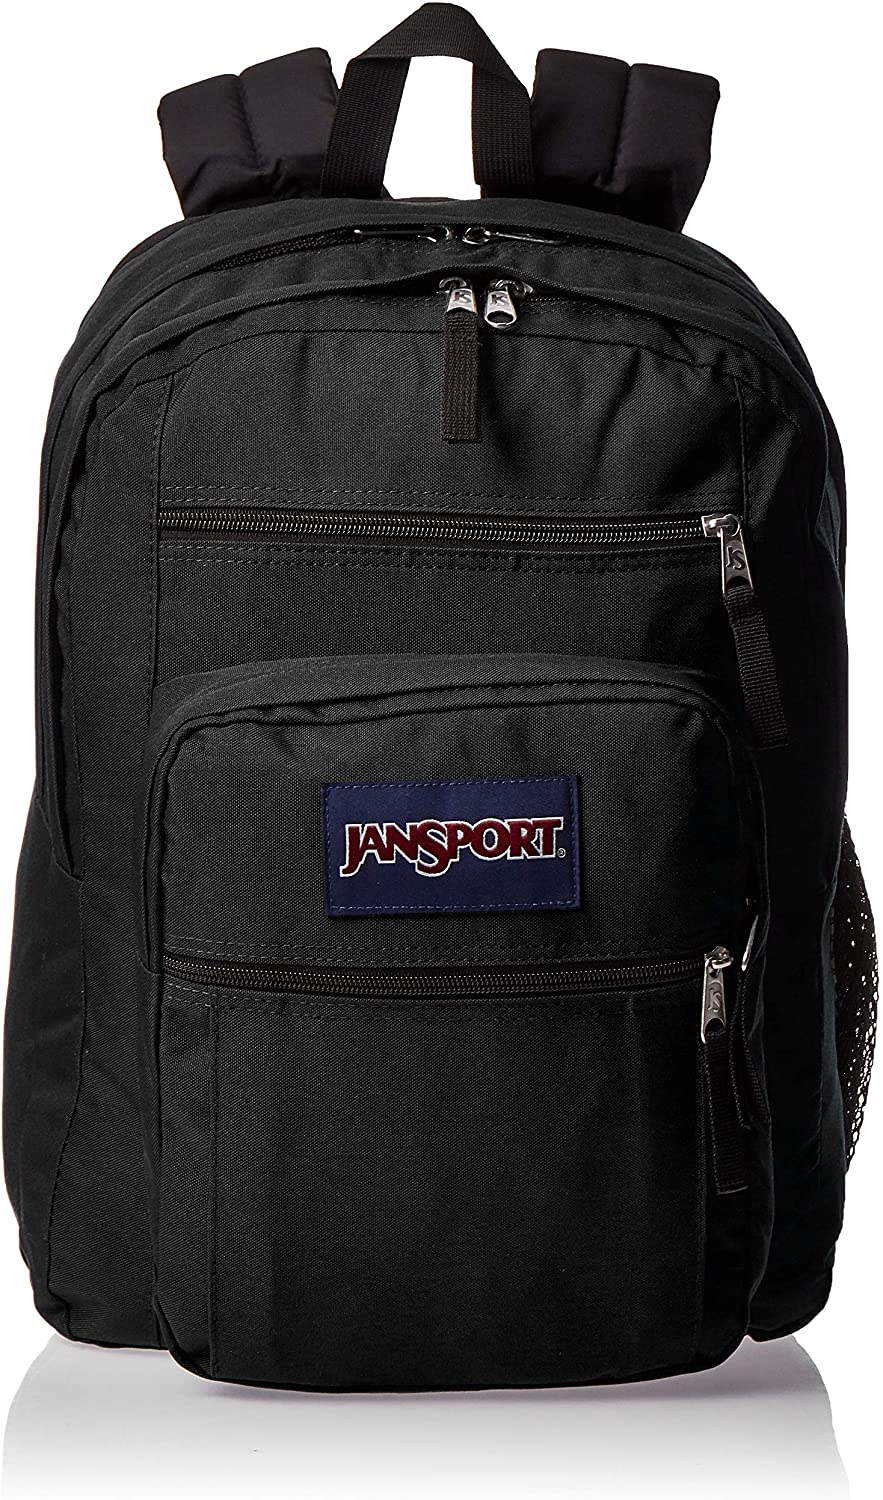 JanSport Big Student Backpack - Sustainable 15-inch Laptop School Bag, Black: Clothing